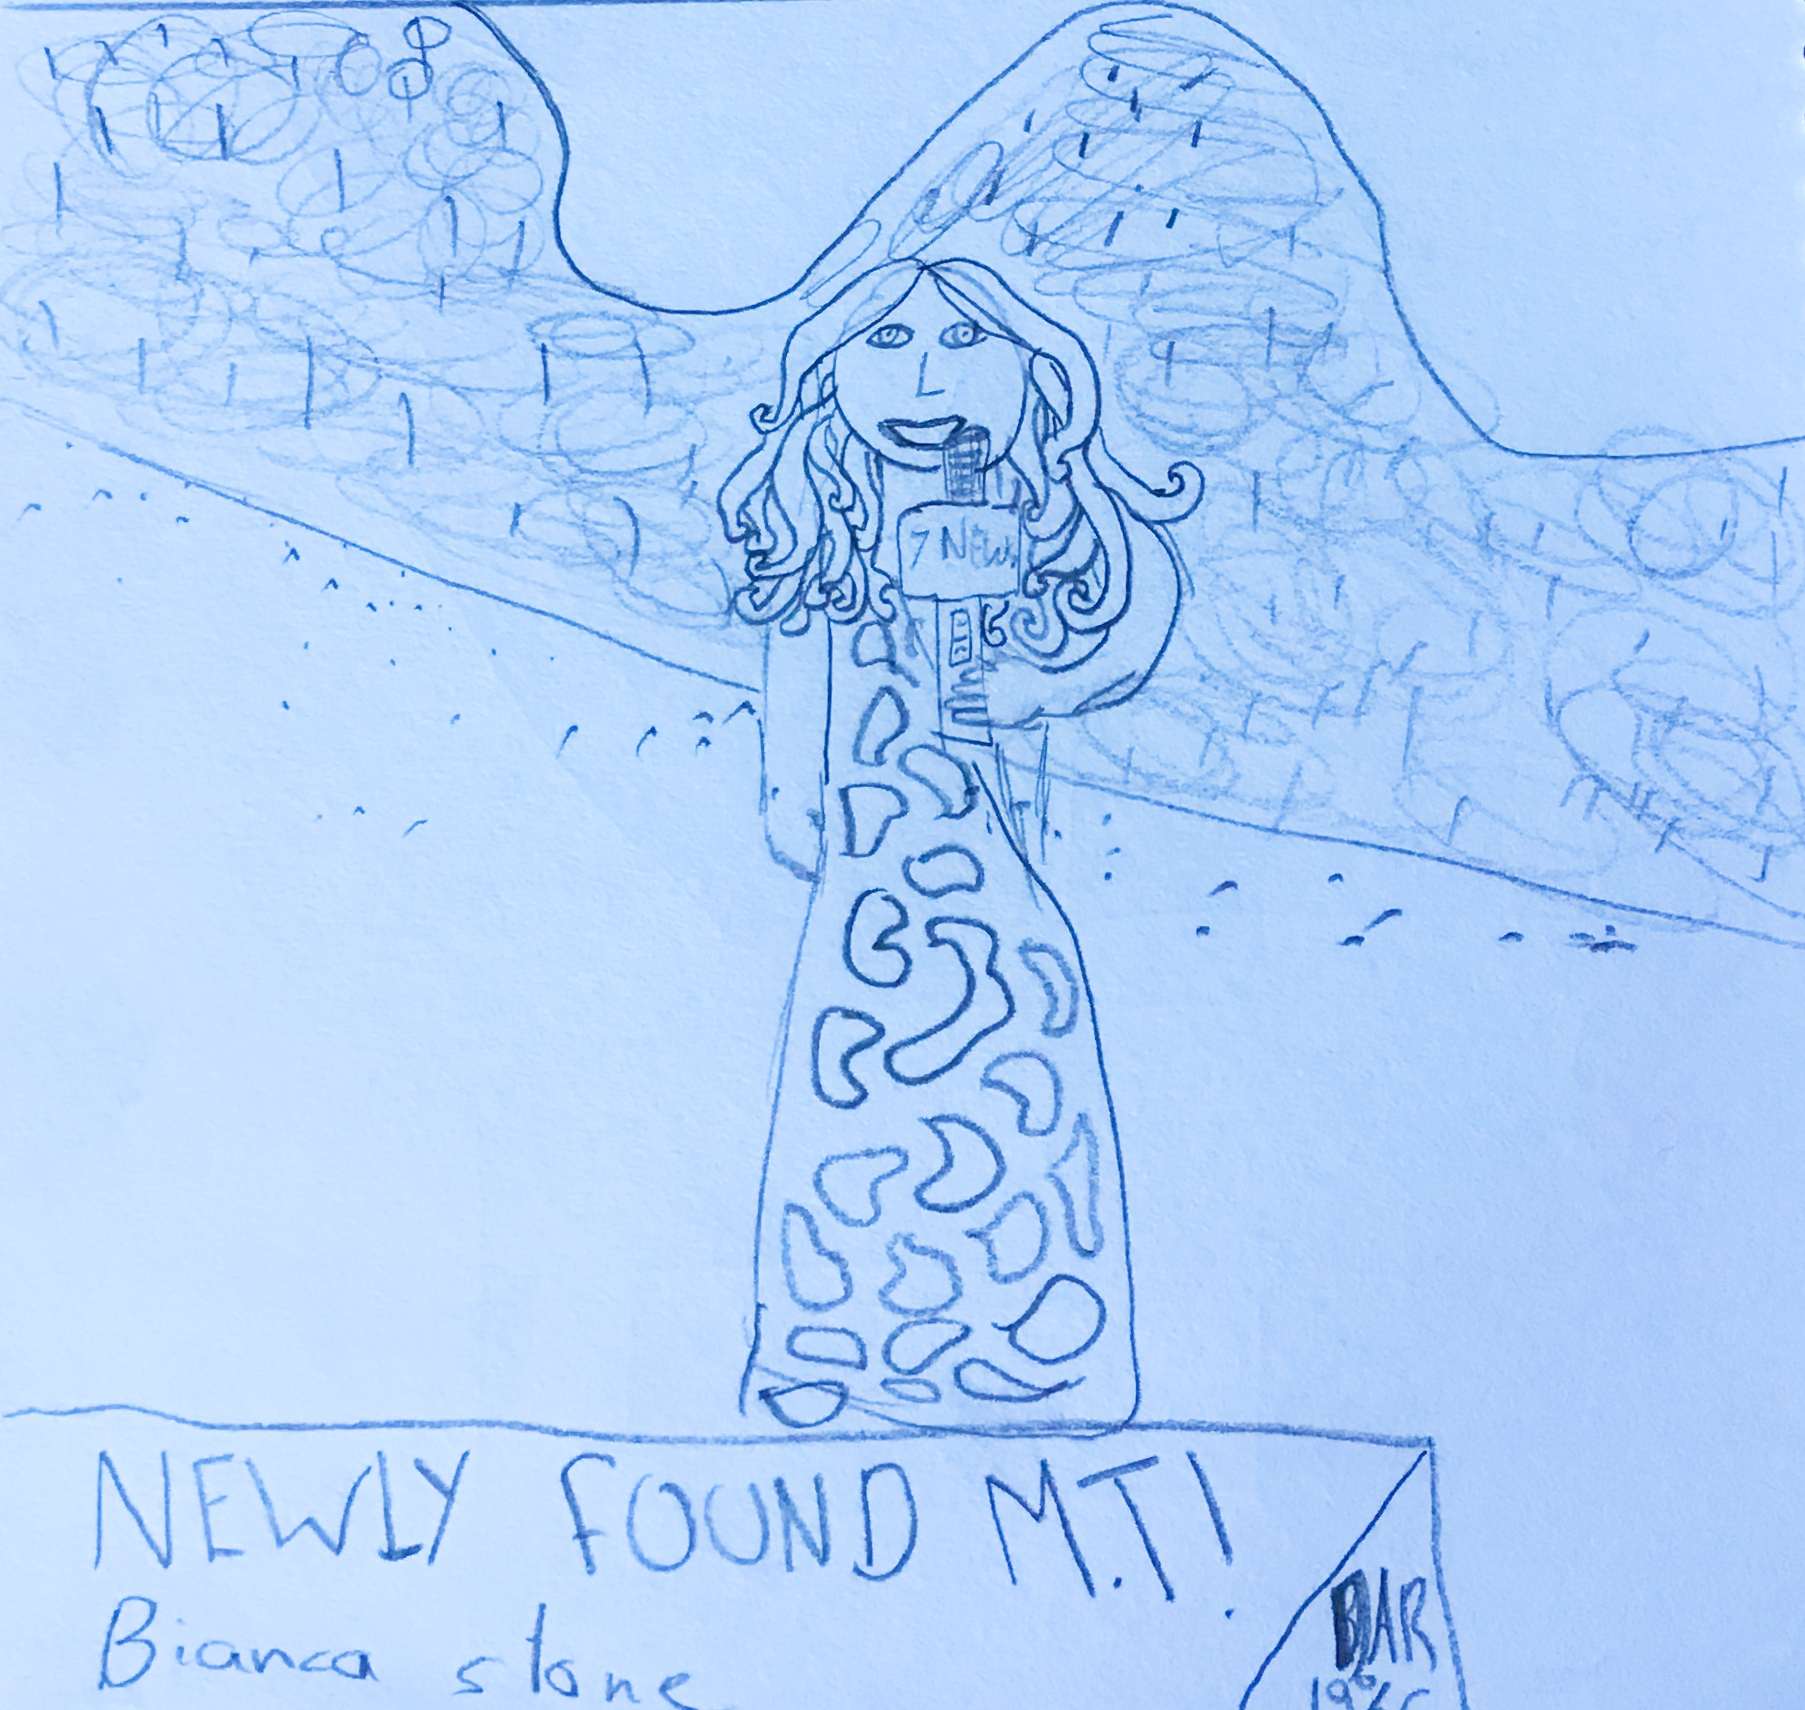 A drawing created by an Art Club member of a newsreader on TV.